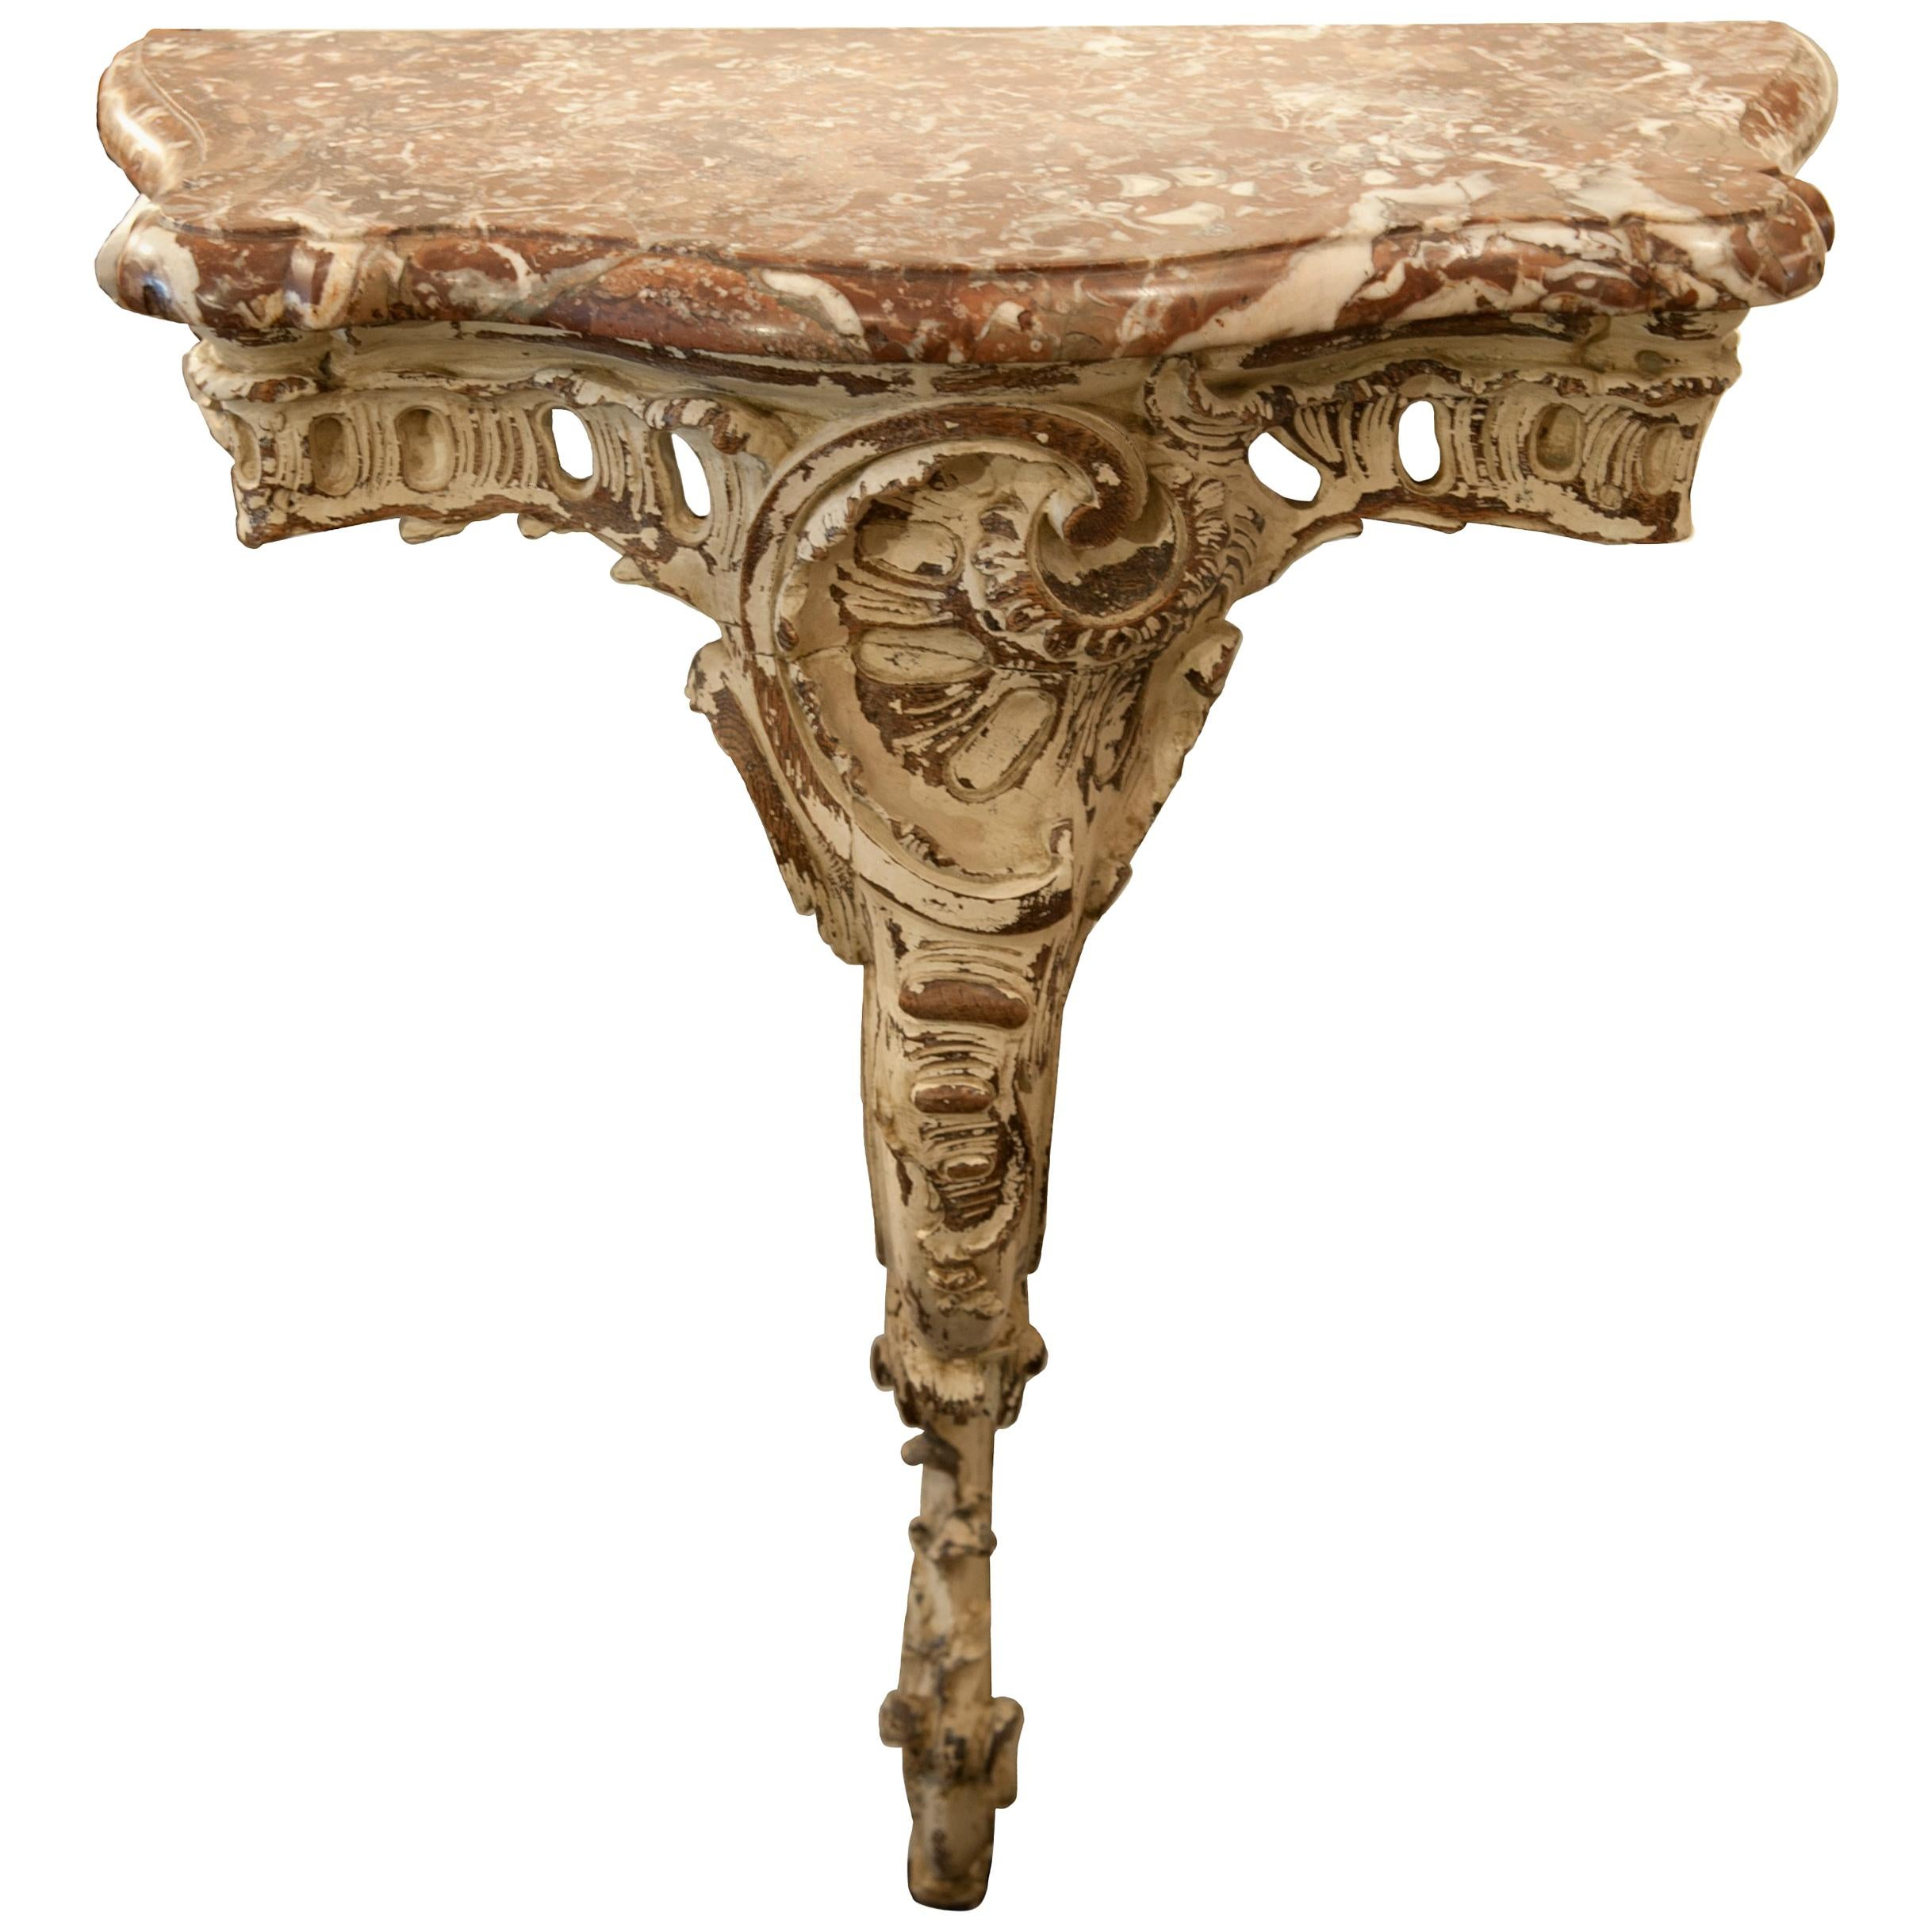 French Louis XV Provencal Style, 19th Century Marble-Top Console Table